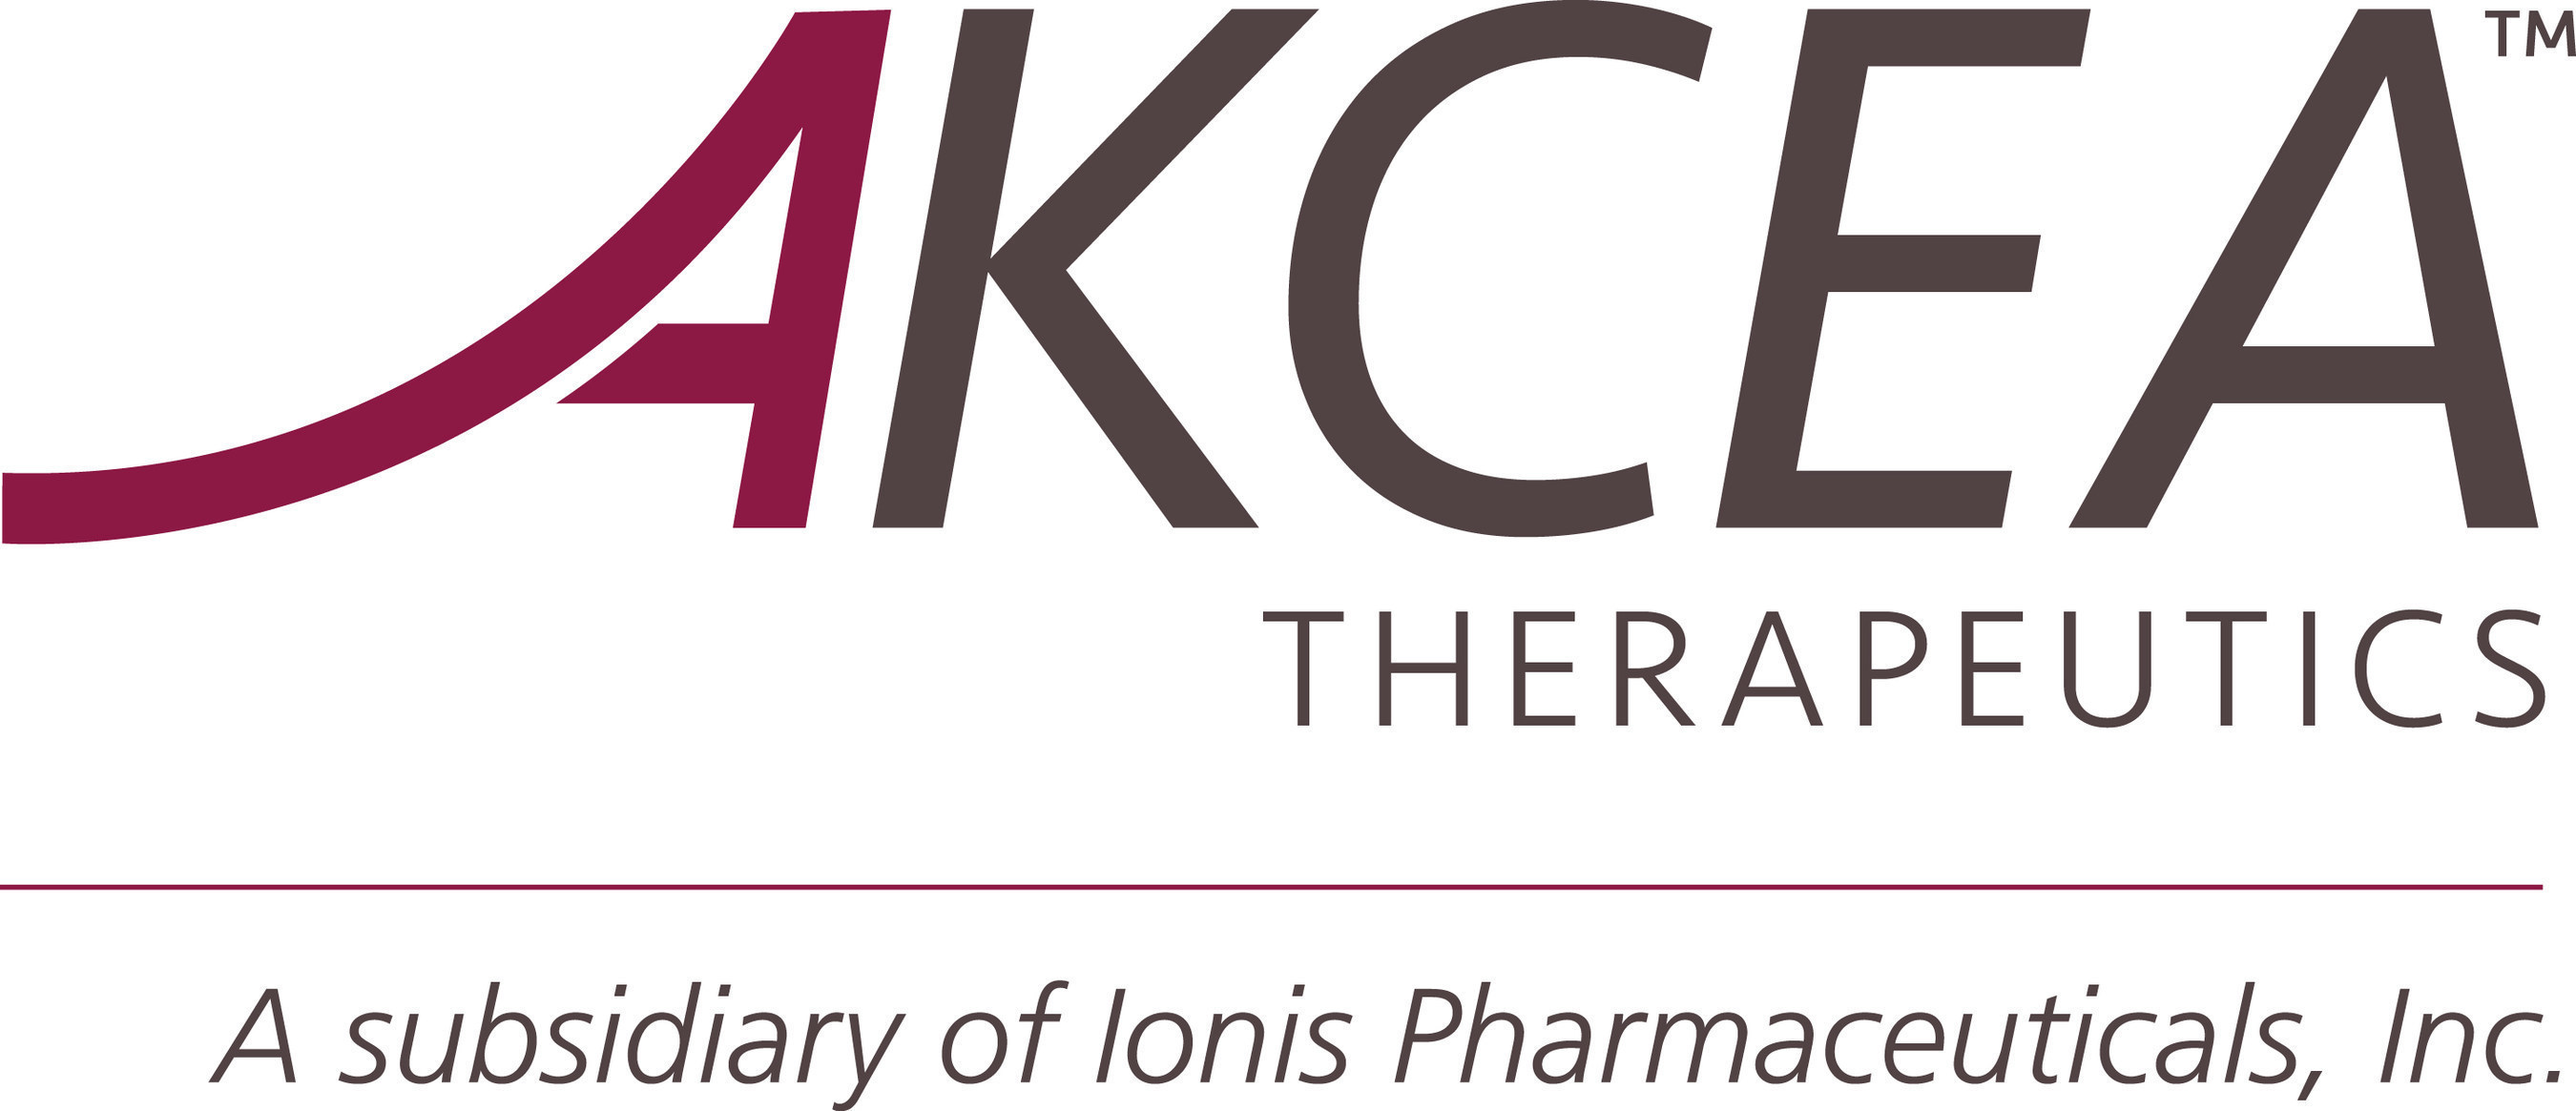 Akcea Therapeutics, Inc. (PRNewsFoto/Ionis Pharmaceuticals)